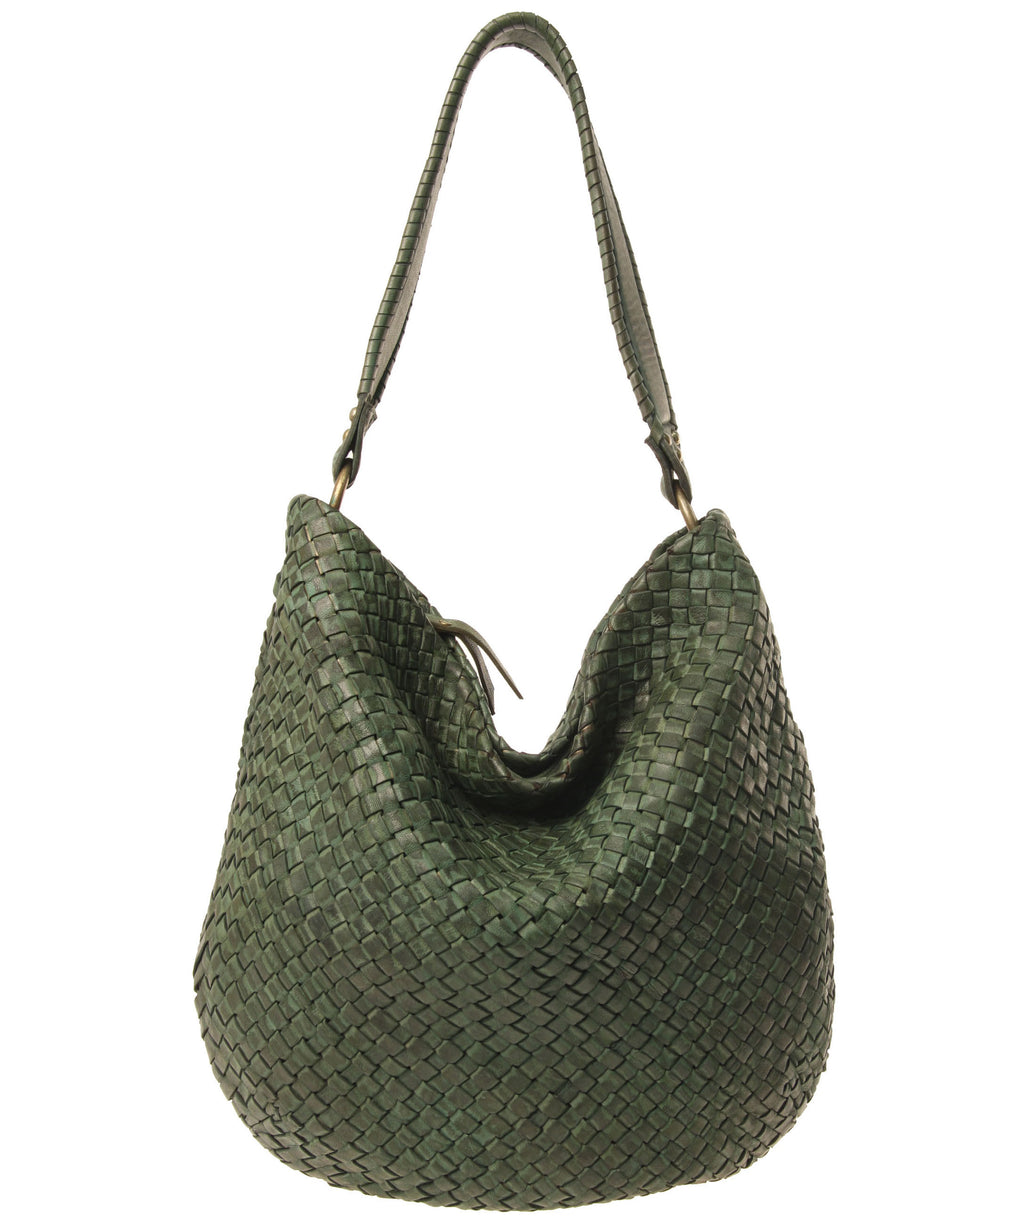 Rounded Woven Leather Hobo with Whipstitch Handle (9098841355)